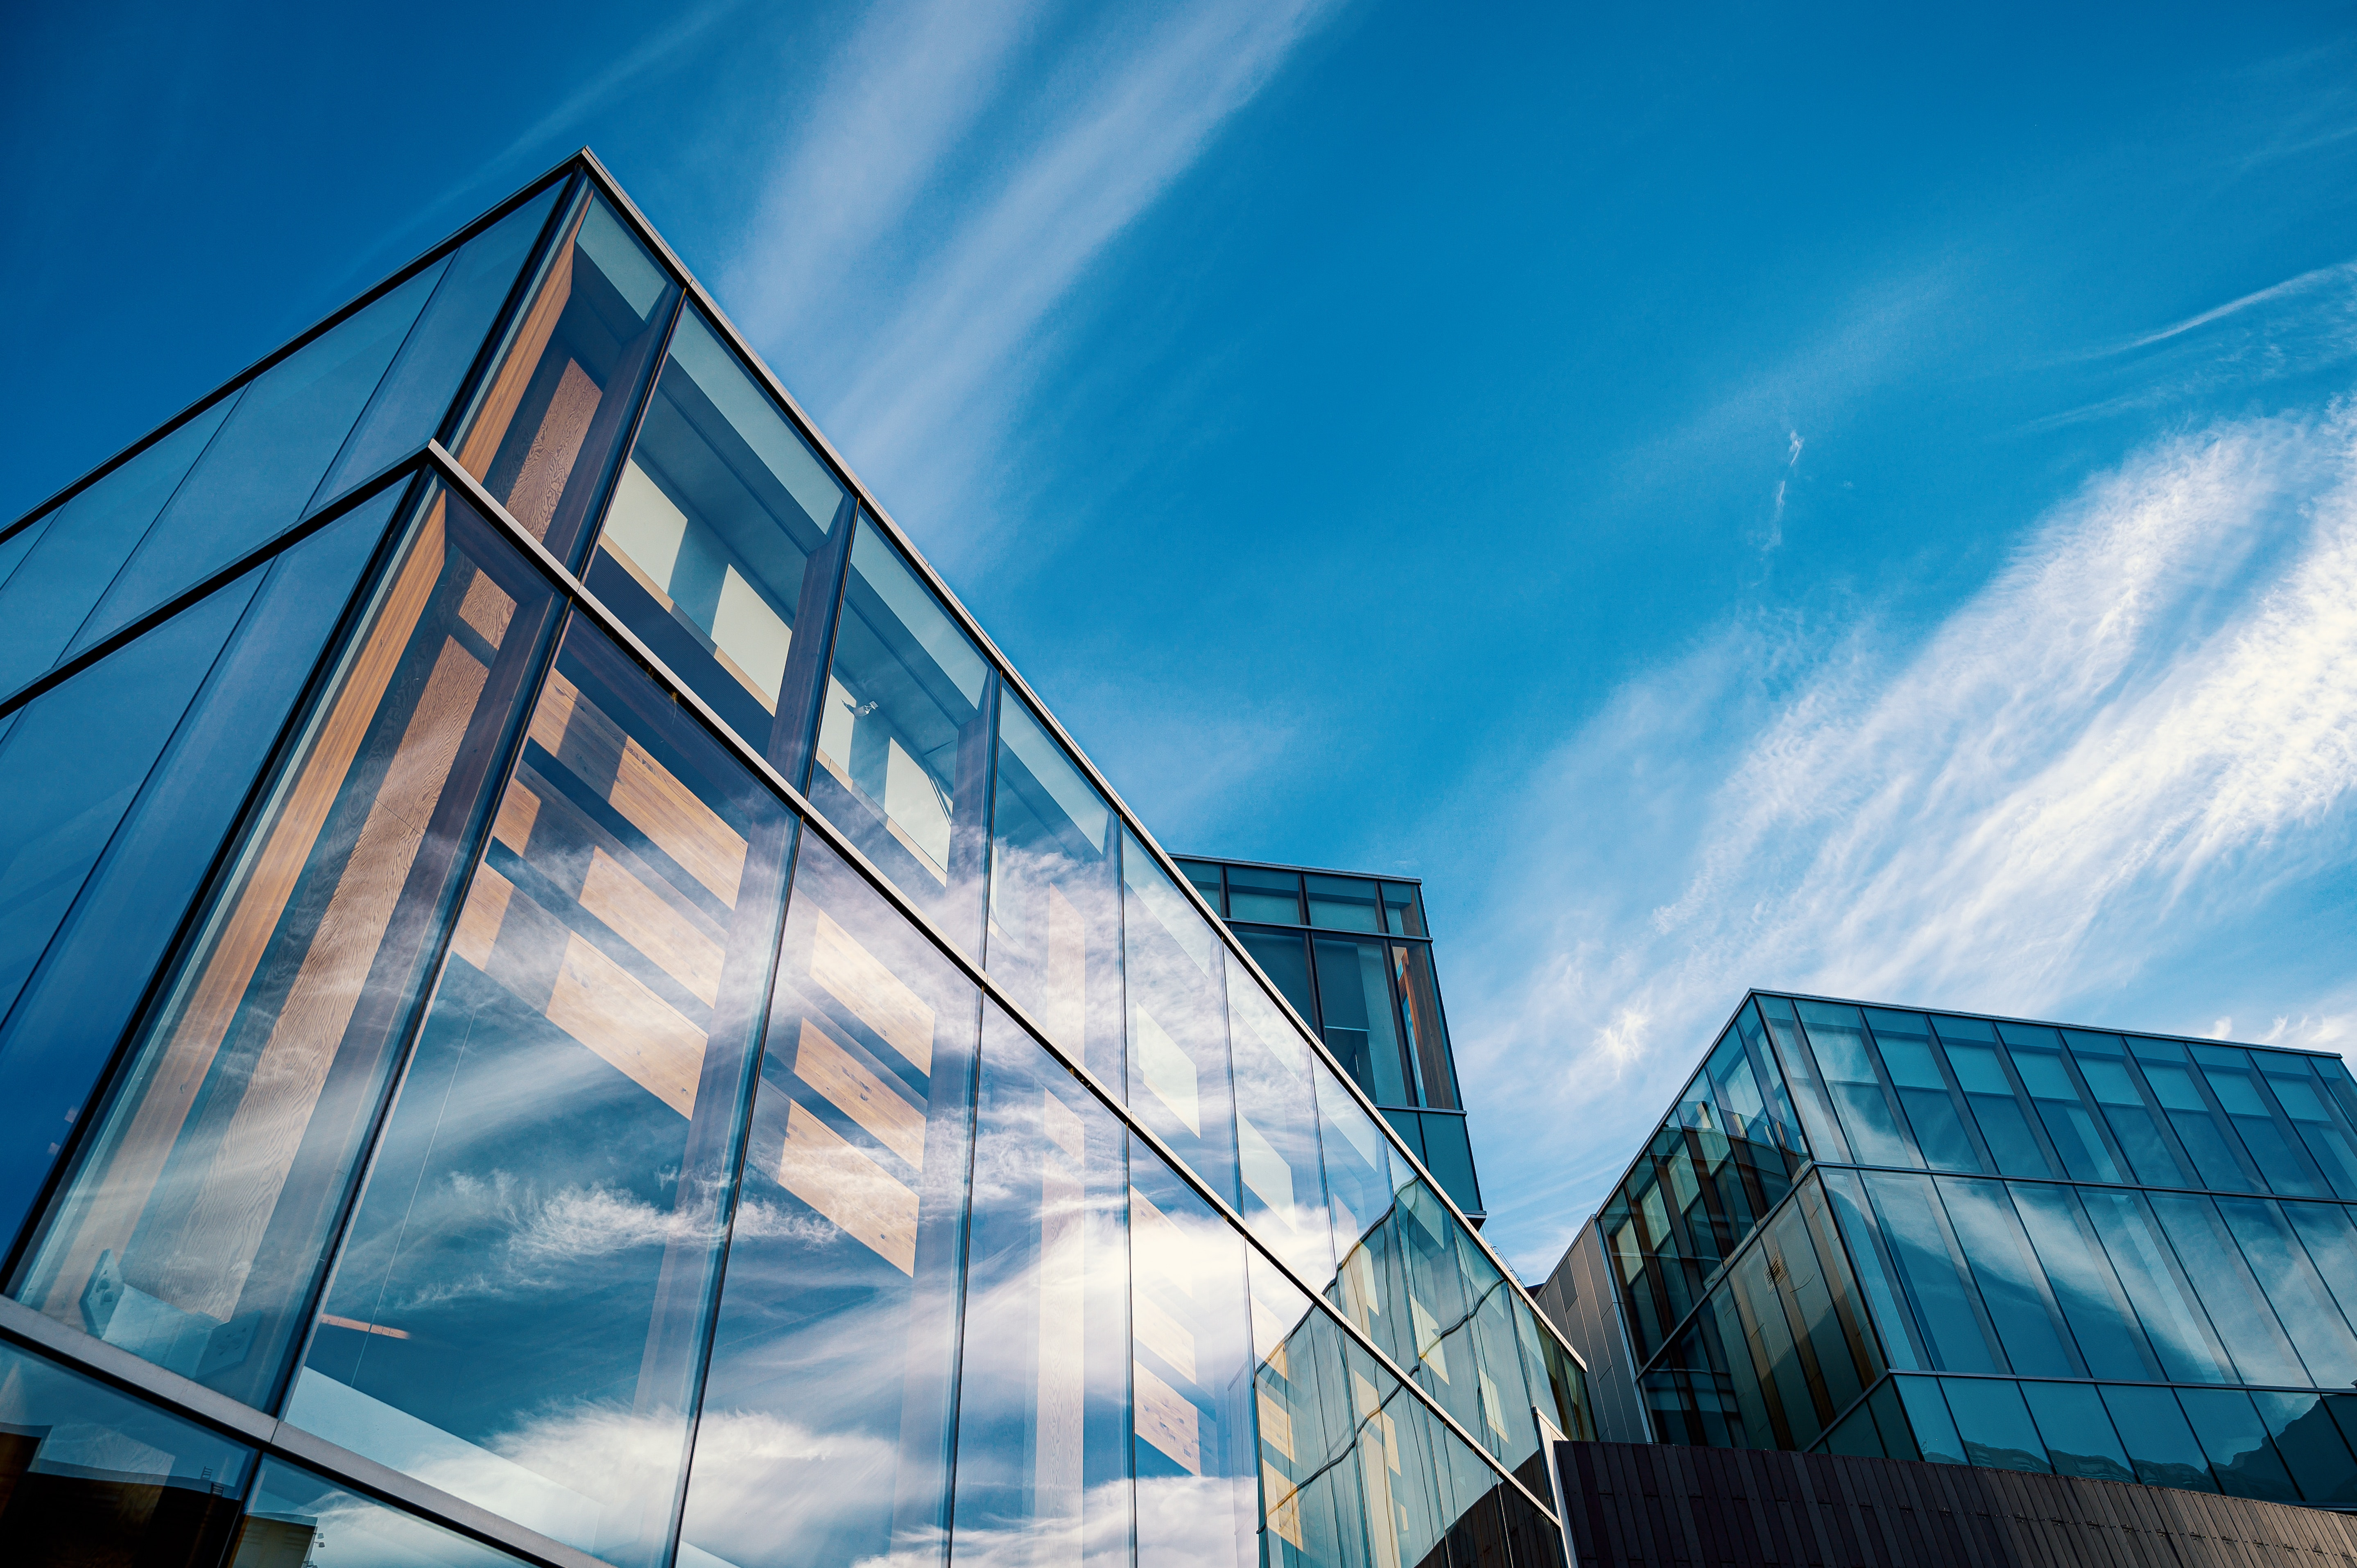 low-angle-photo-of-glass-buildings-2599538